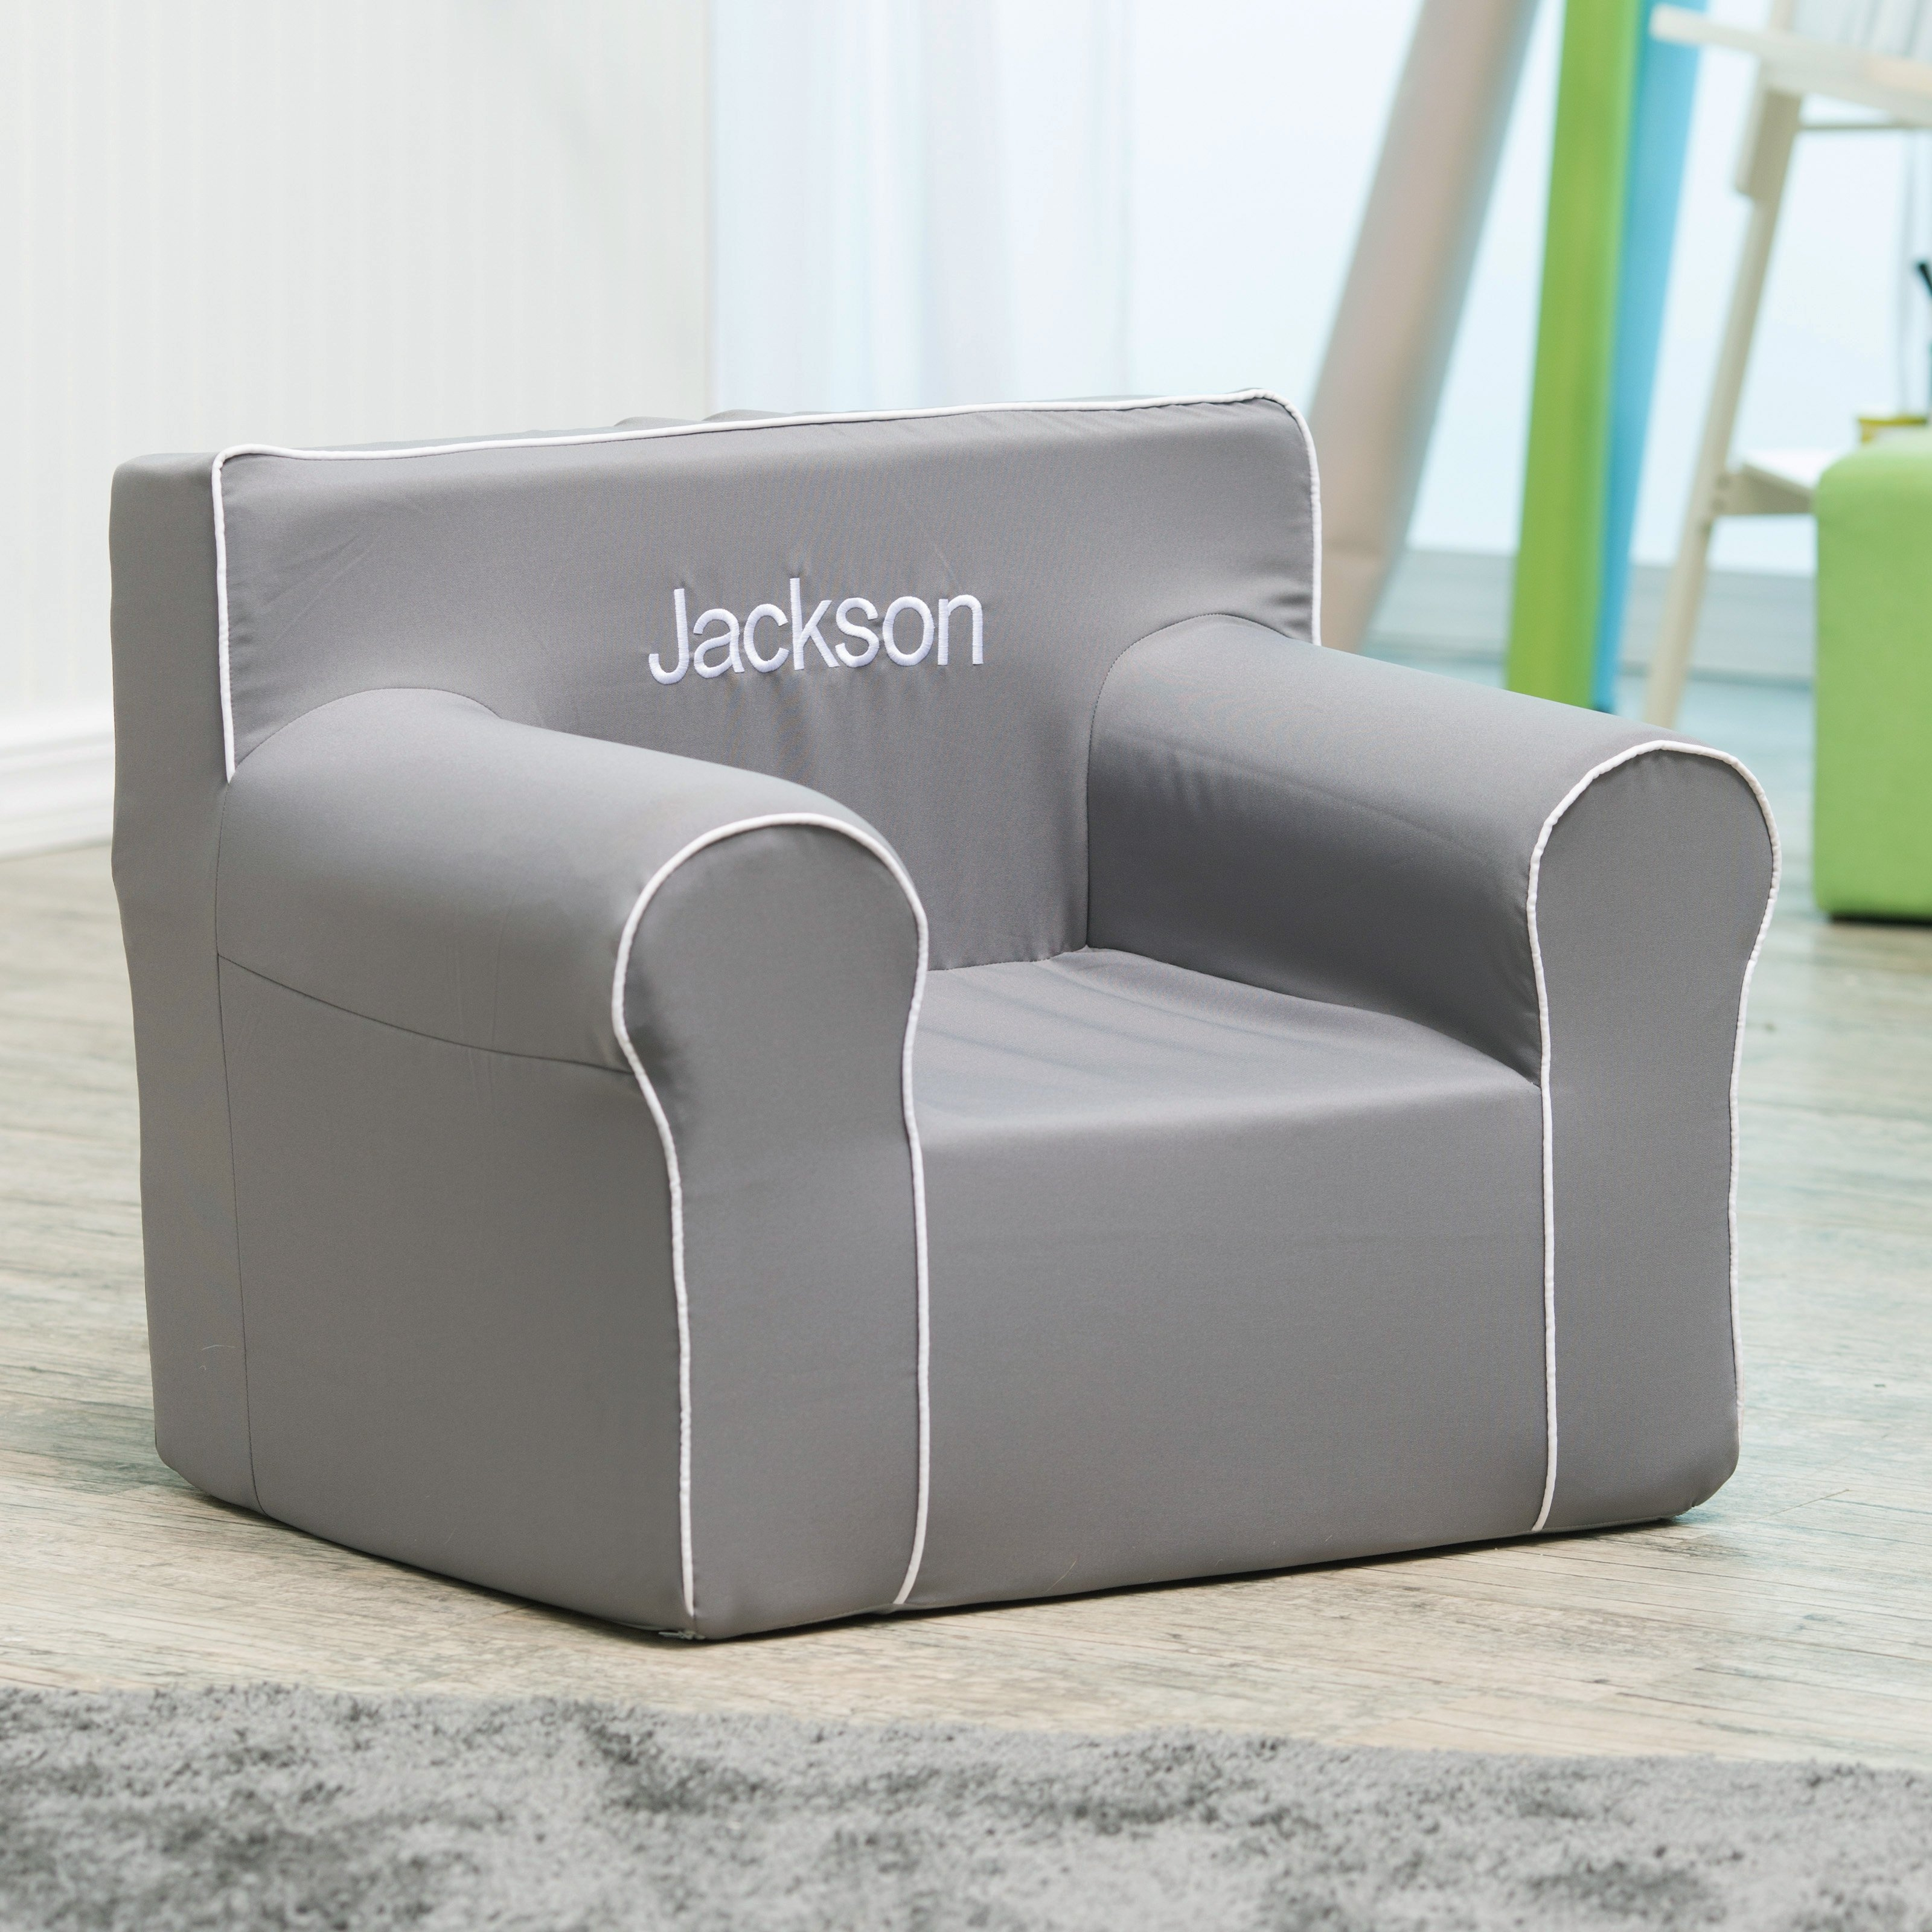 Orbelle Contemporary Solid Wood Toddler Bed Gray Toddler Beds Within Personalized Kids Chairs And Sofas (Image 5 of 15)